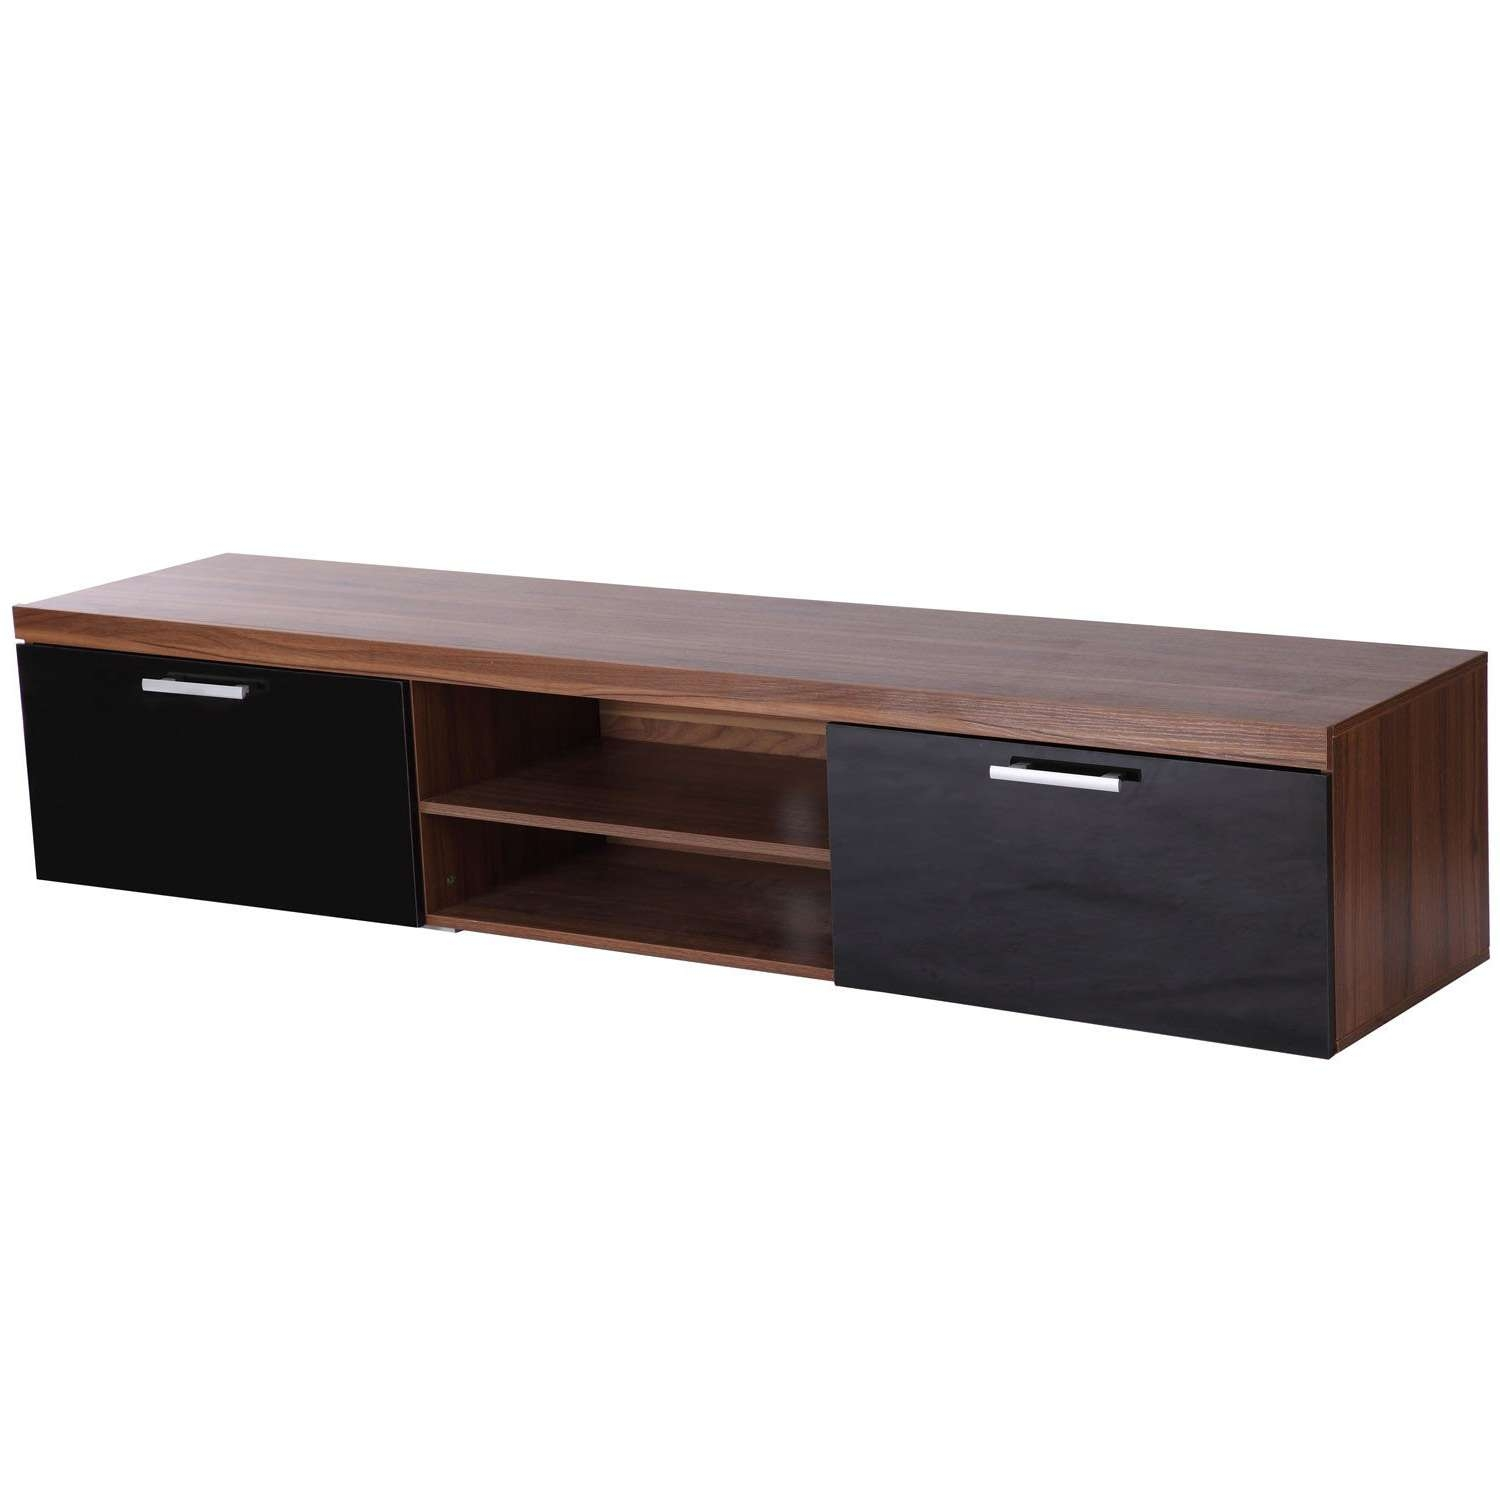 Tv Cabinet Unit, 2 High Gloss Doors Black/walnut Regarding Walnut Tv Cabinets (View 17 of 20)